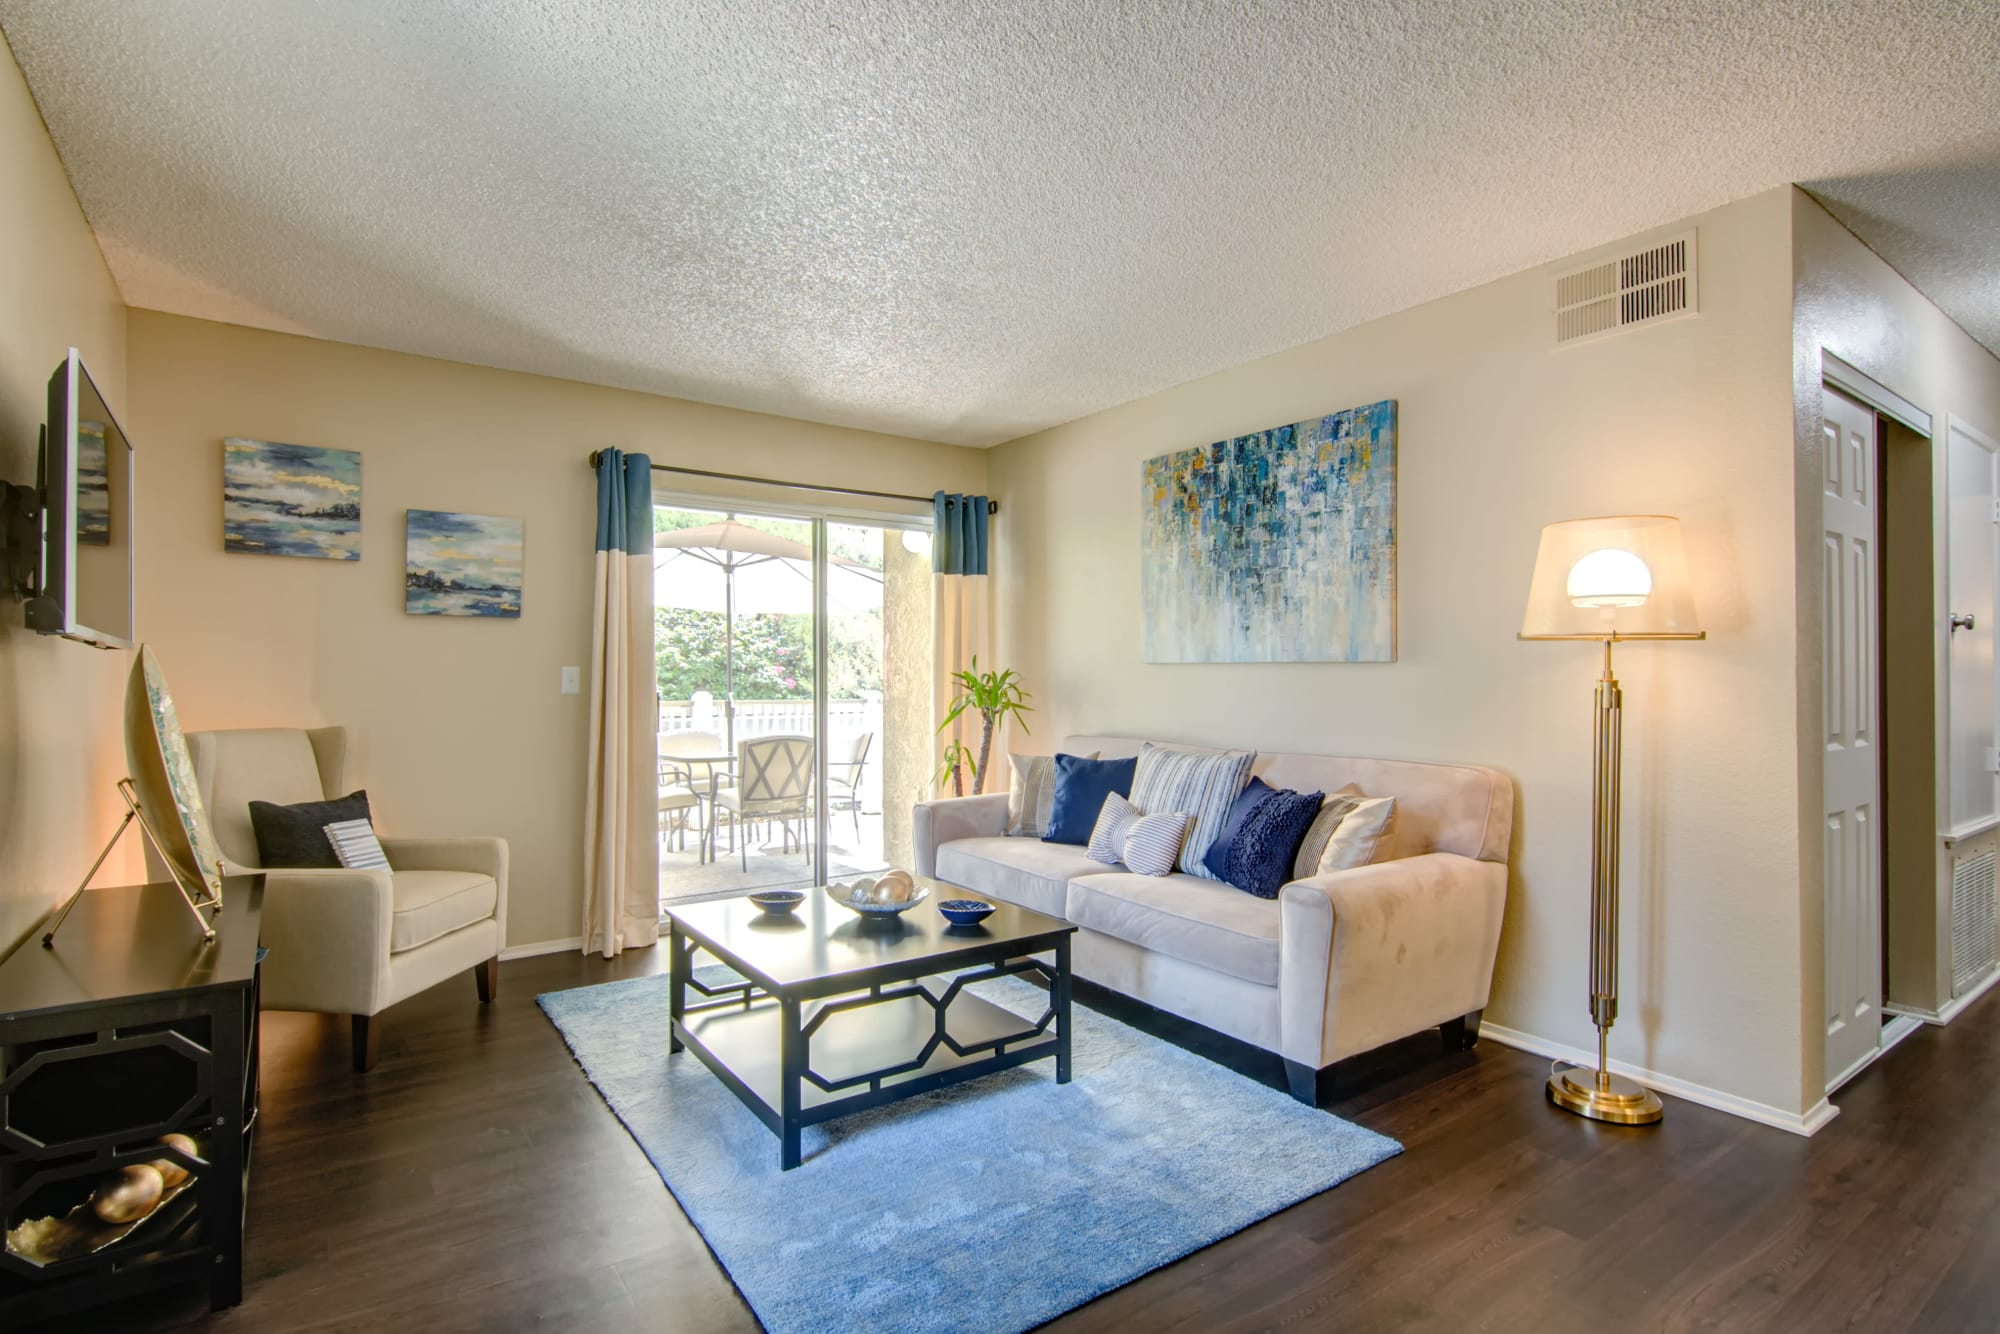 A spacious living room and hallway at Lakeview Village Apartments in Spring Valley, California